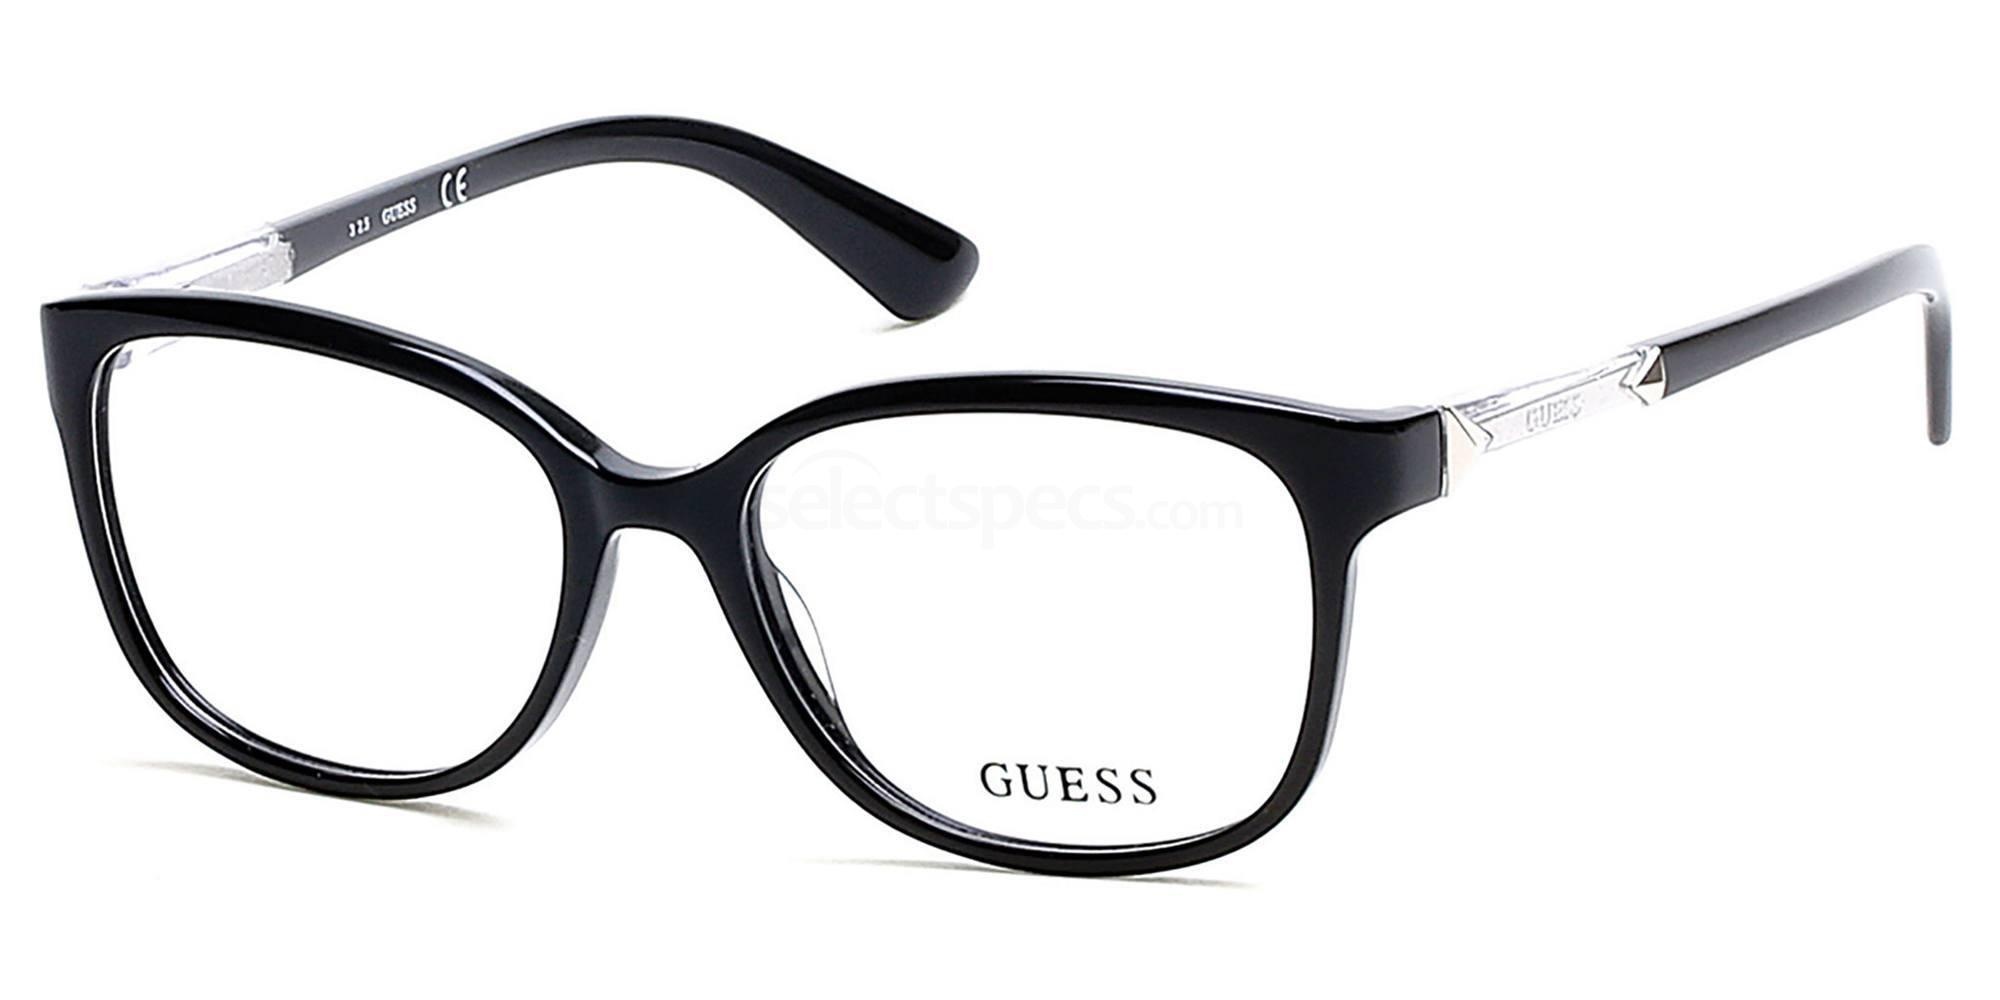 001 GU2560 Glasses, Guess